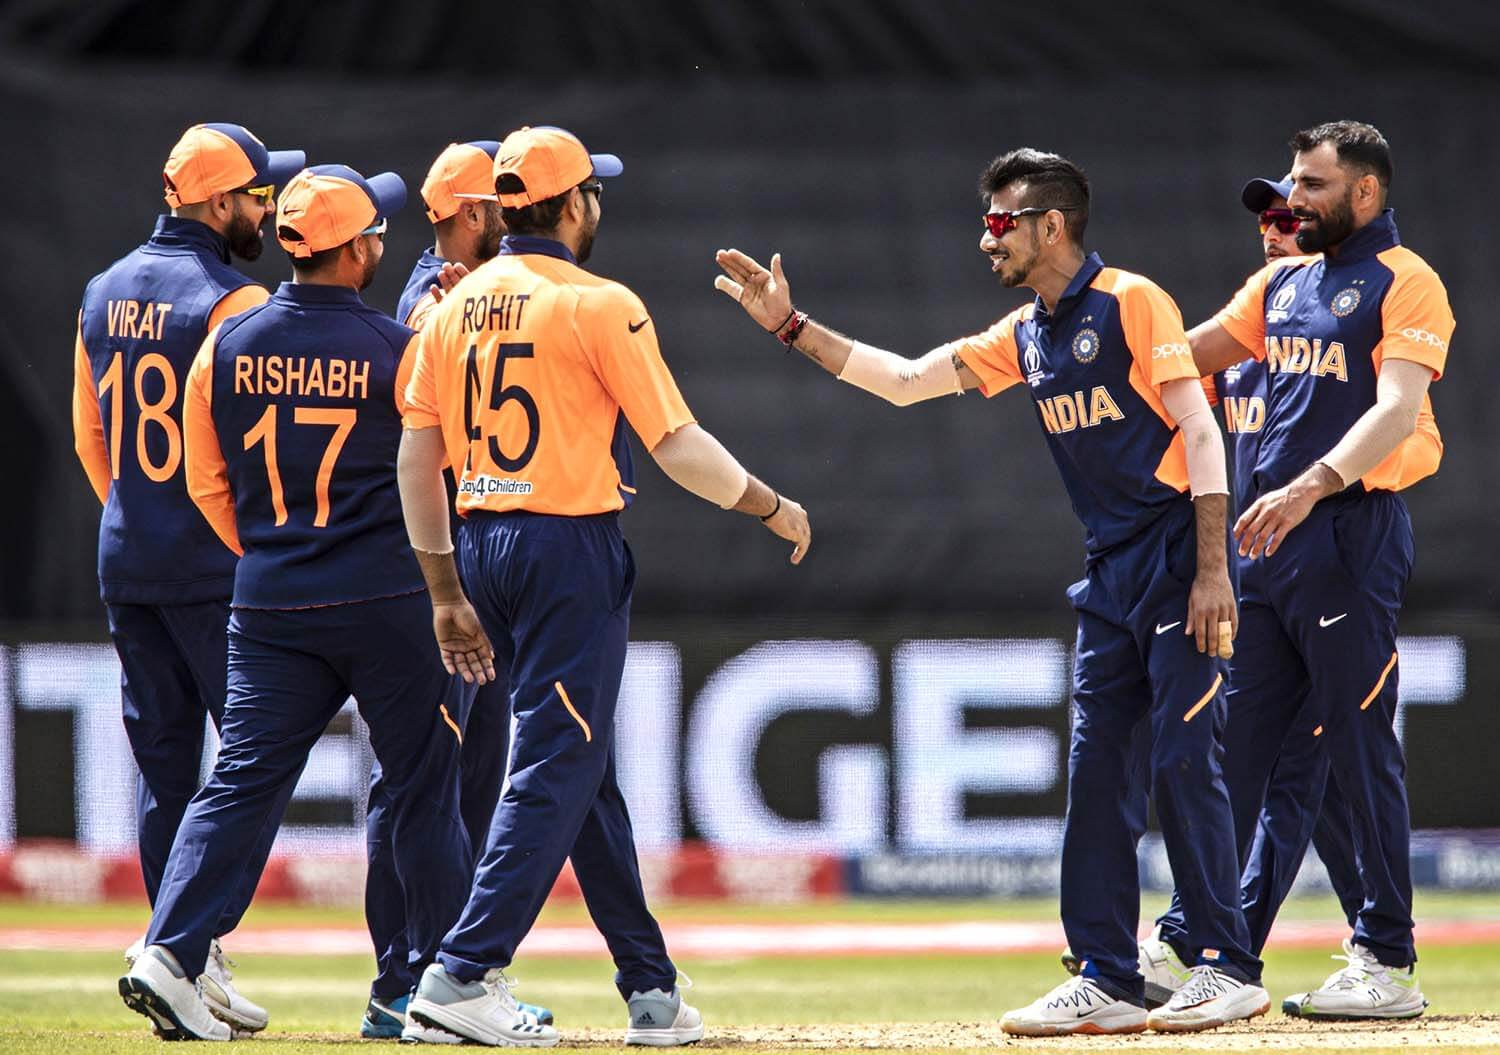 World Cup 2019 Indian Cricket Team Flaunts Their New Jersey